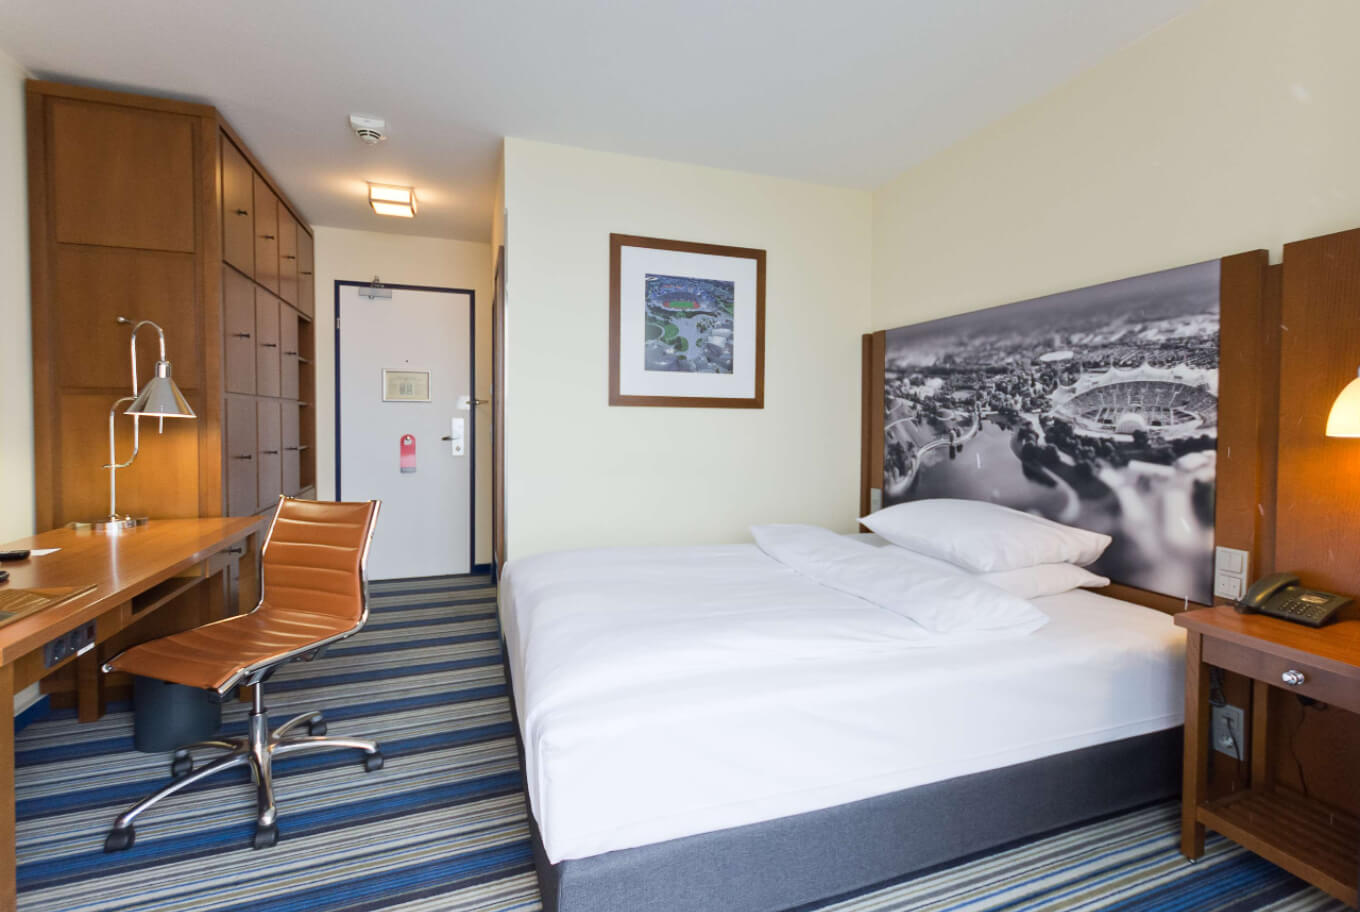 Our single room in Arthotel ANA the Olympiapark | Munich